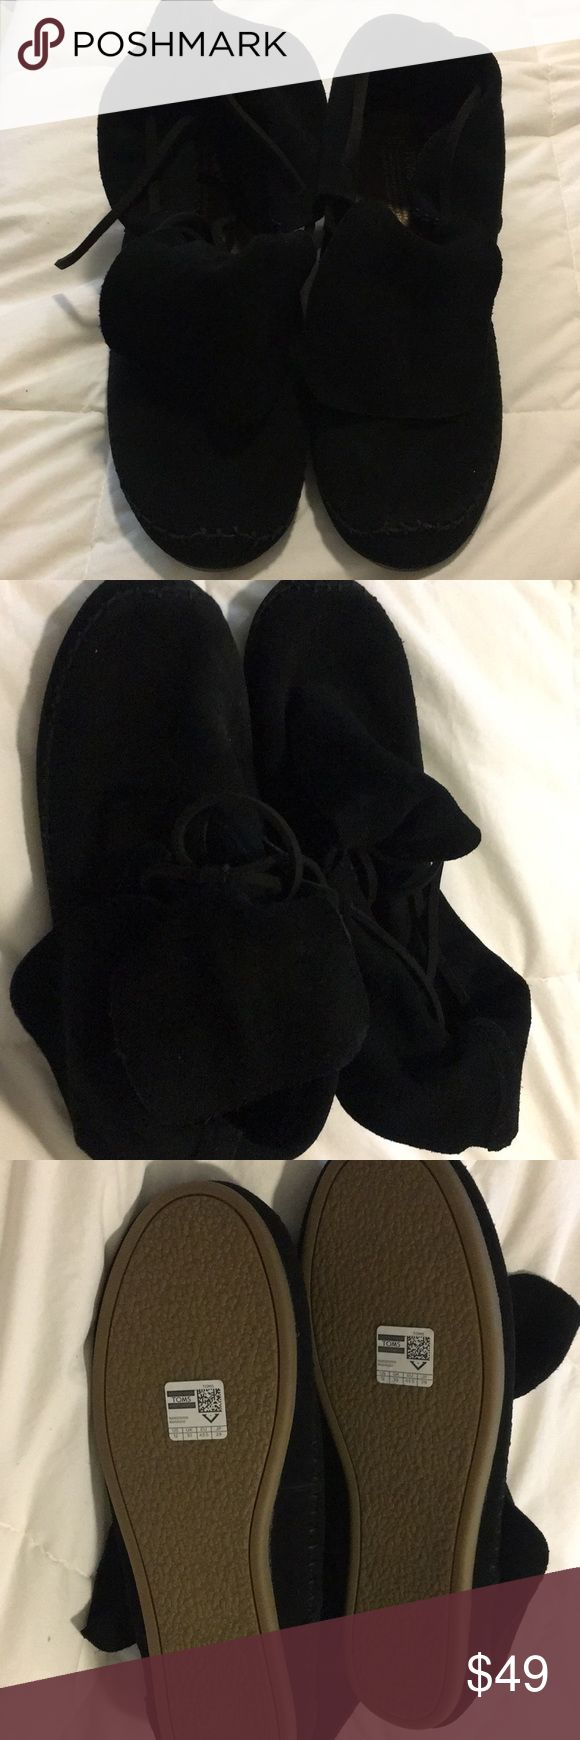 Boots new without box TOMS women's Suede bootie This cozy casual boots with suede upper, moccasin stitching and lace up front. They're adorable suede booties features a fold-over too for a laid-back look Toms Shoes Ankle Boots & Booties